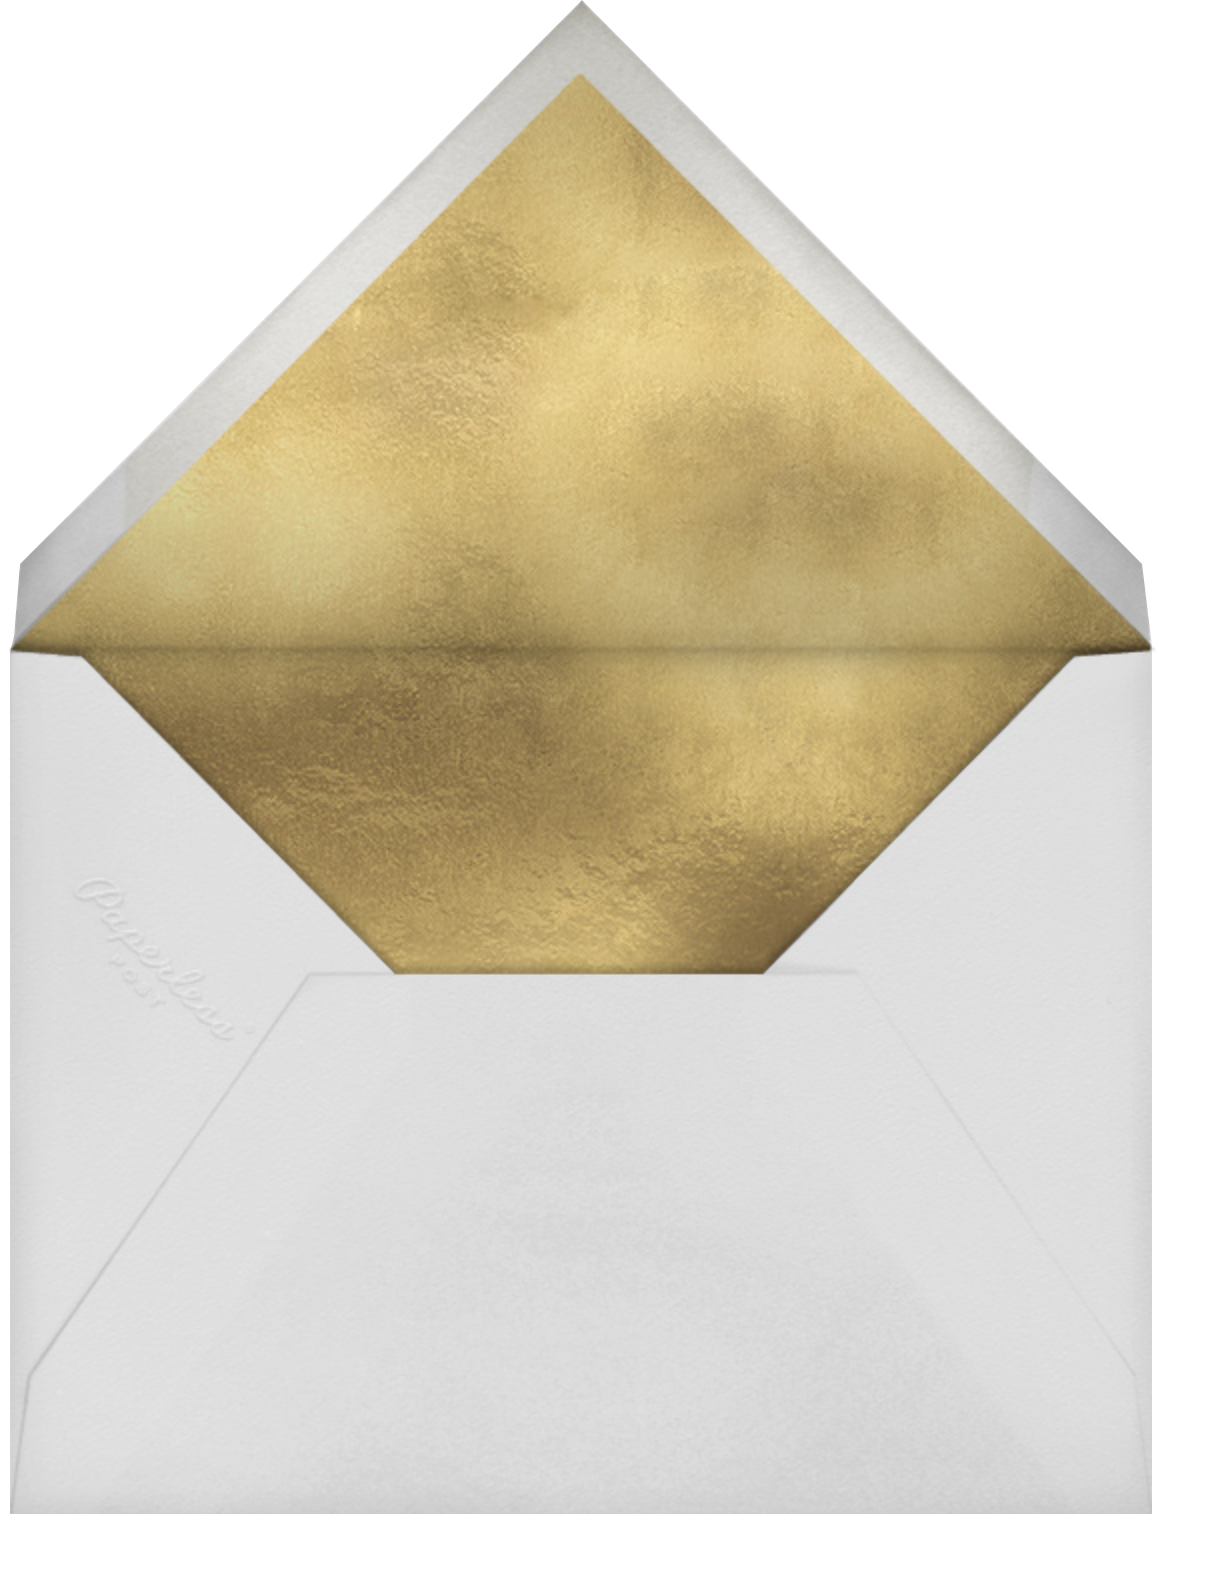 Grand Plans - Paperless Post - Engagement party - envelope back